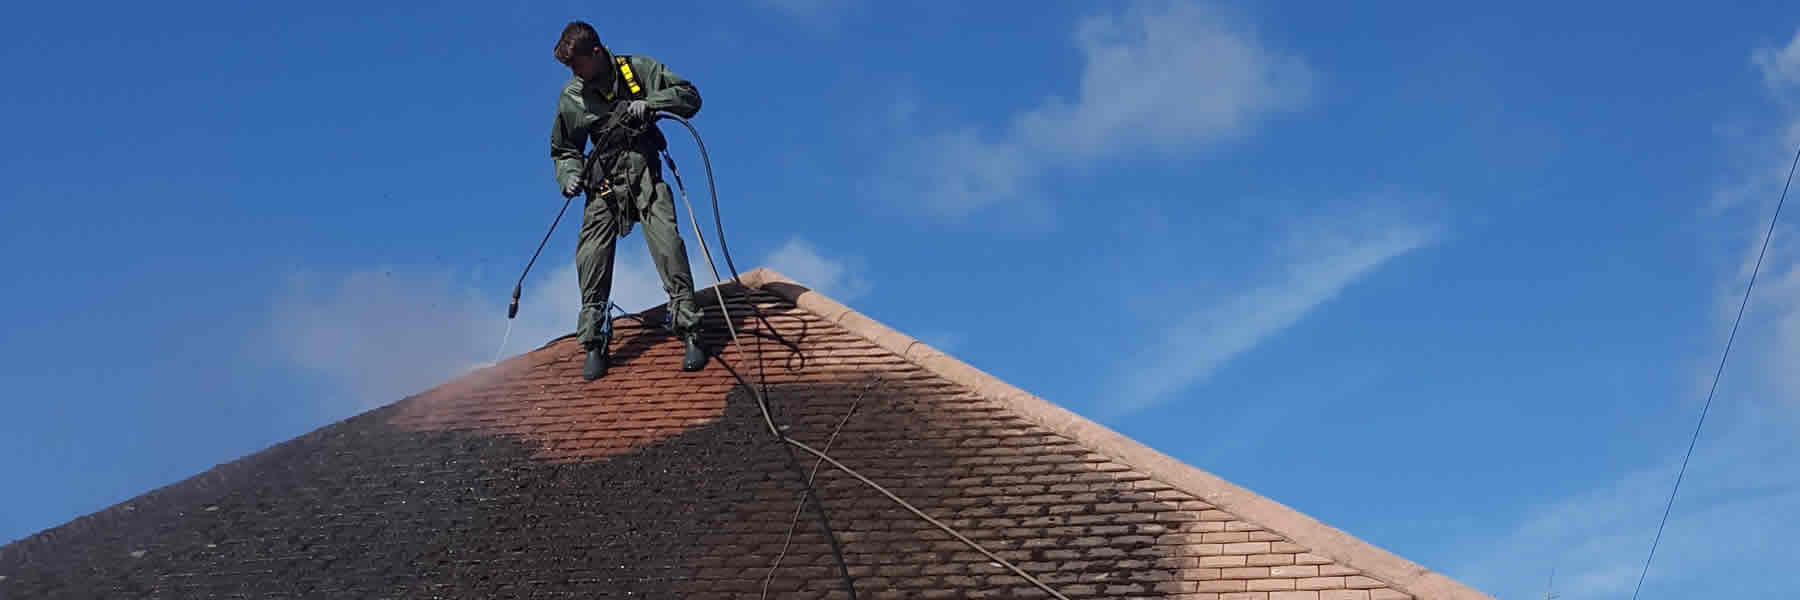 roof cleaning West Sussex